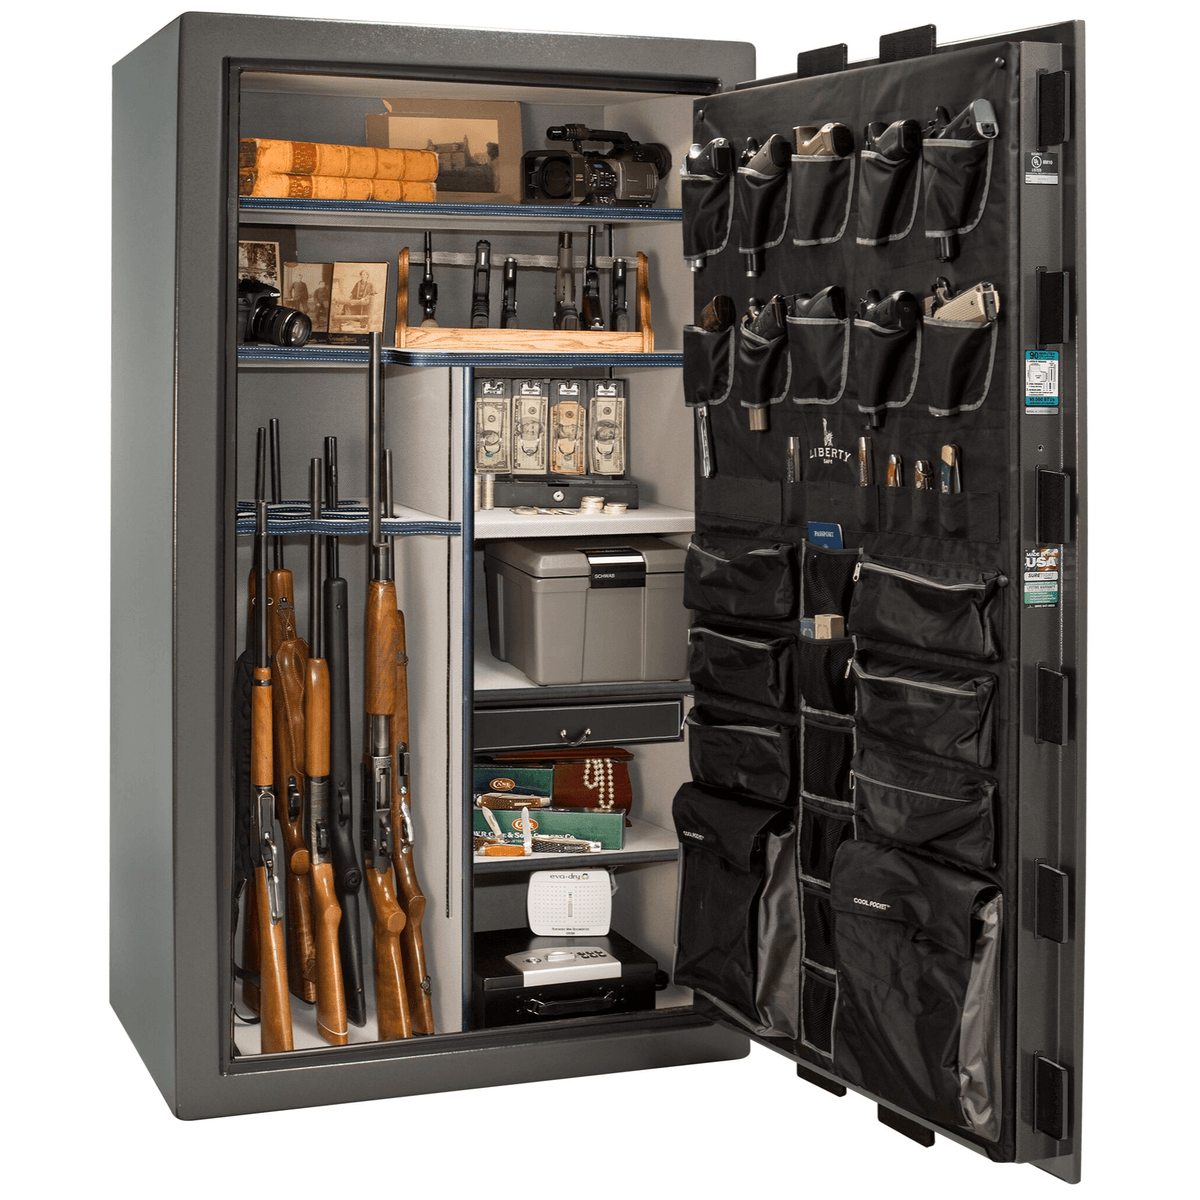 "Lincoln 50 - Level 5 Security - 90 Minute Fire Protection - Gray - Electronic Lock - Dimensions: 72.5""(H) x 42""(W) x 32""(D)"